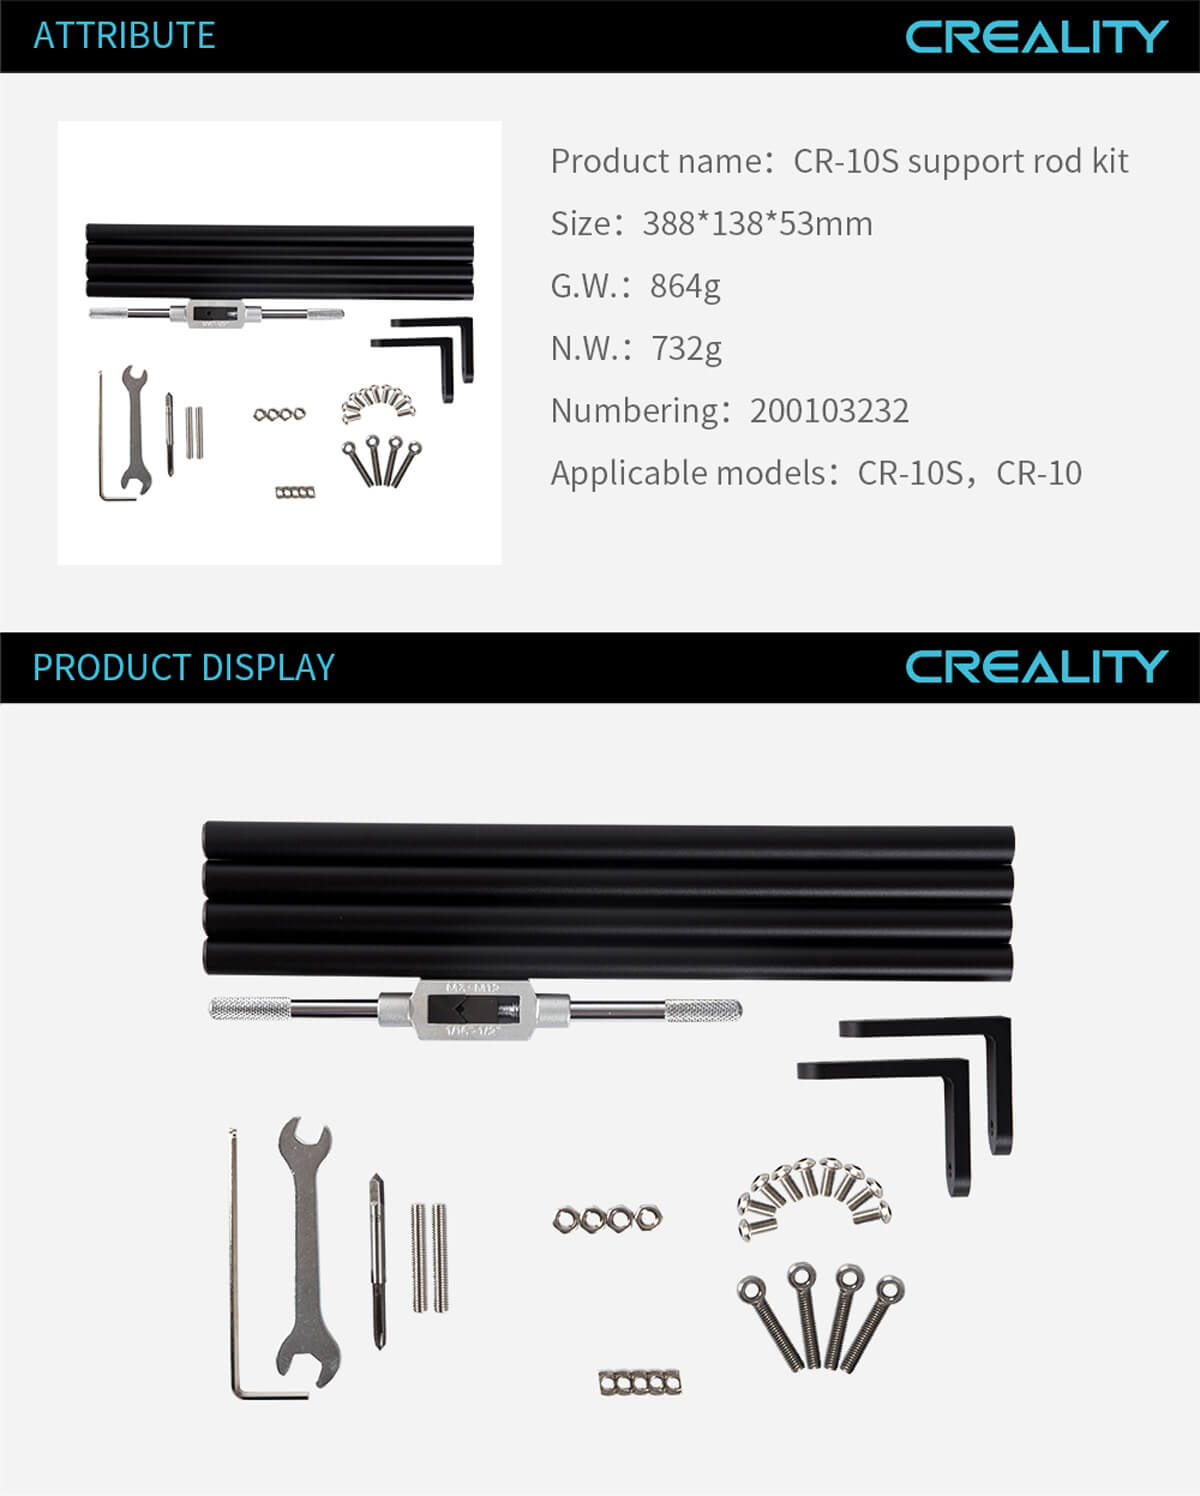 creality-3d-printer-CR-10S-Support-Rod-Kit-11